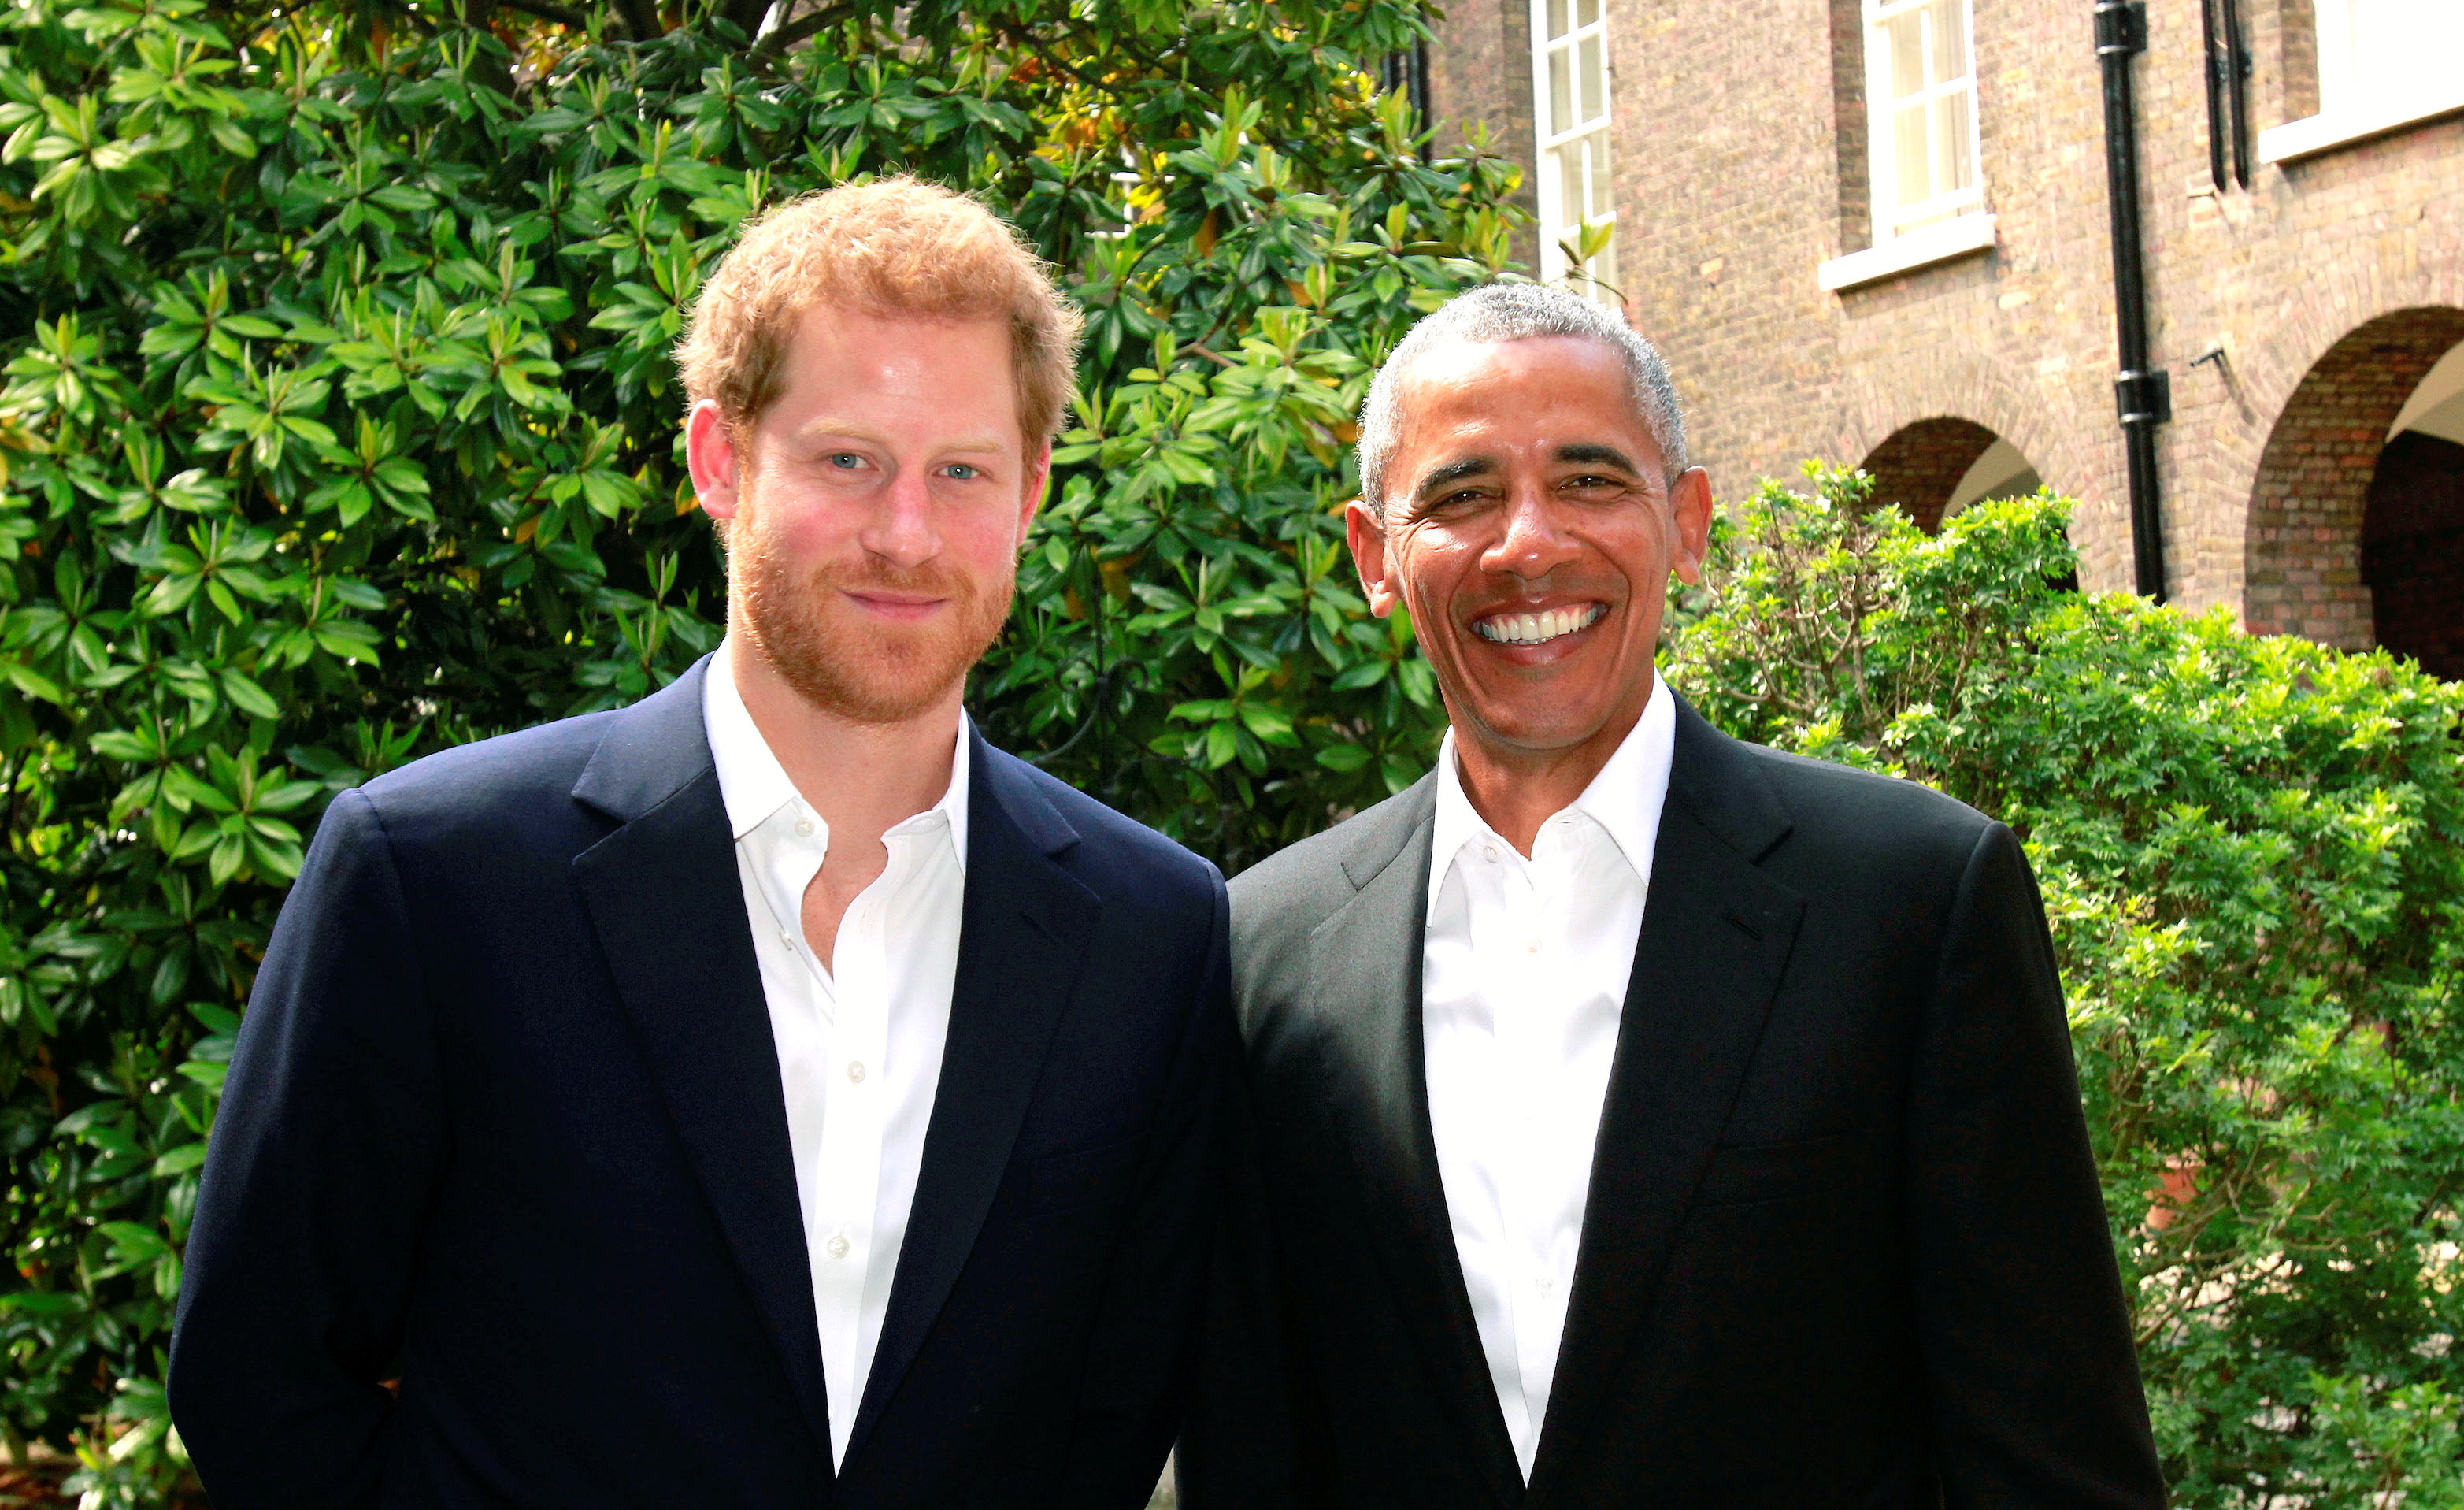 Obama offers condolences to Manchester victims in meeting with Harry